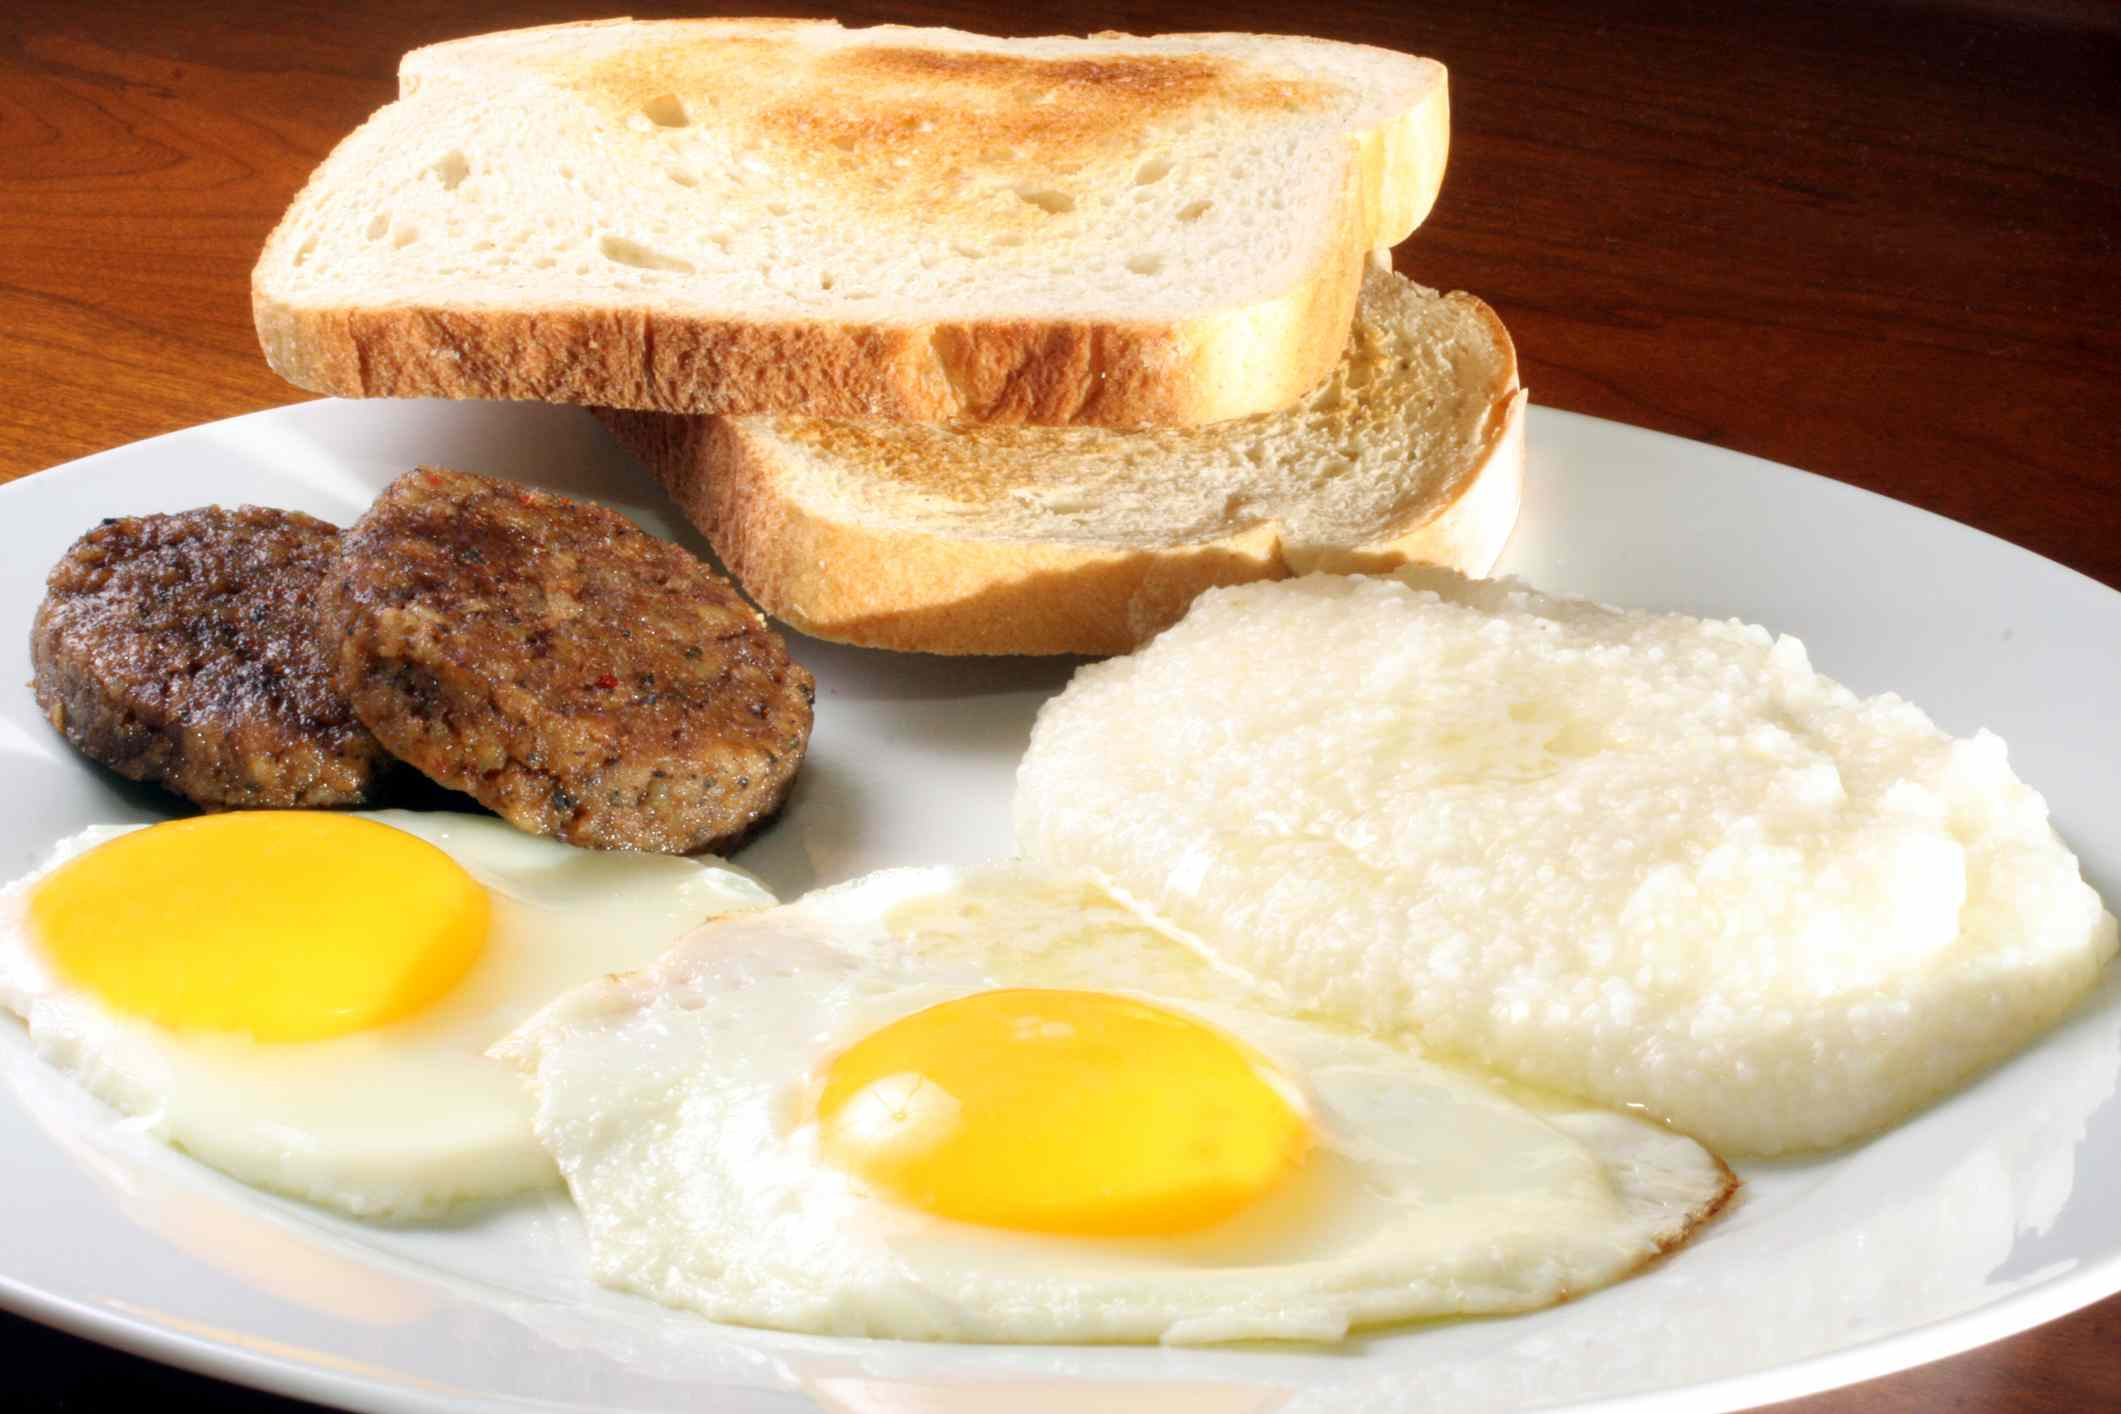 Breakfast of two fried eggs, sausage, grits and toast